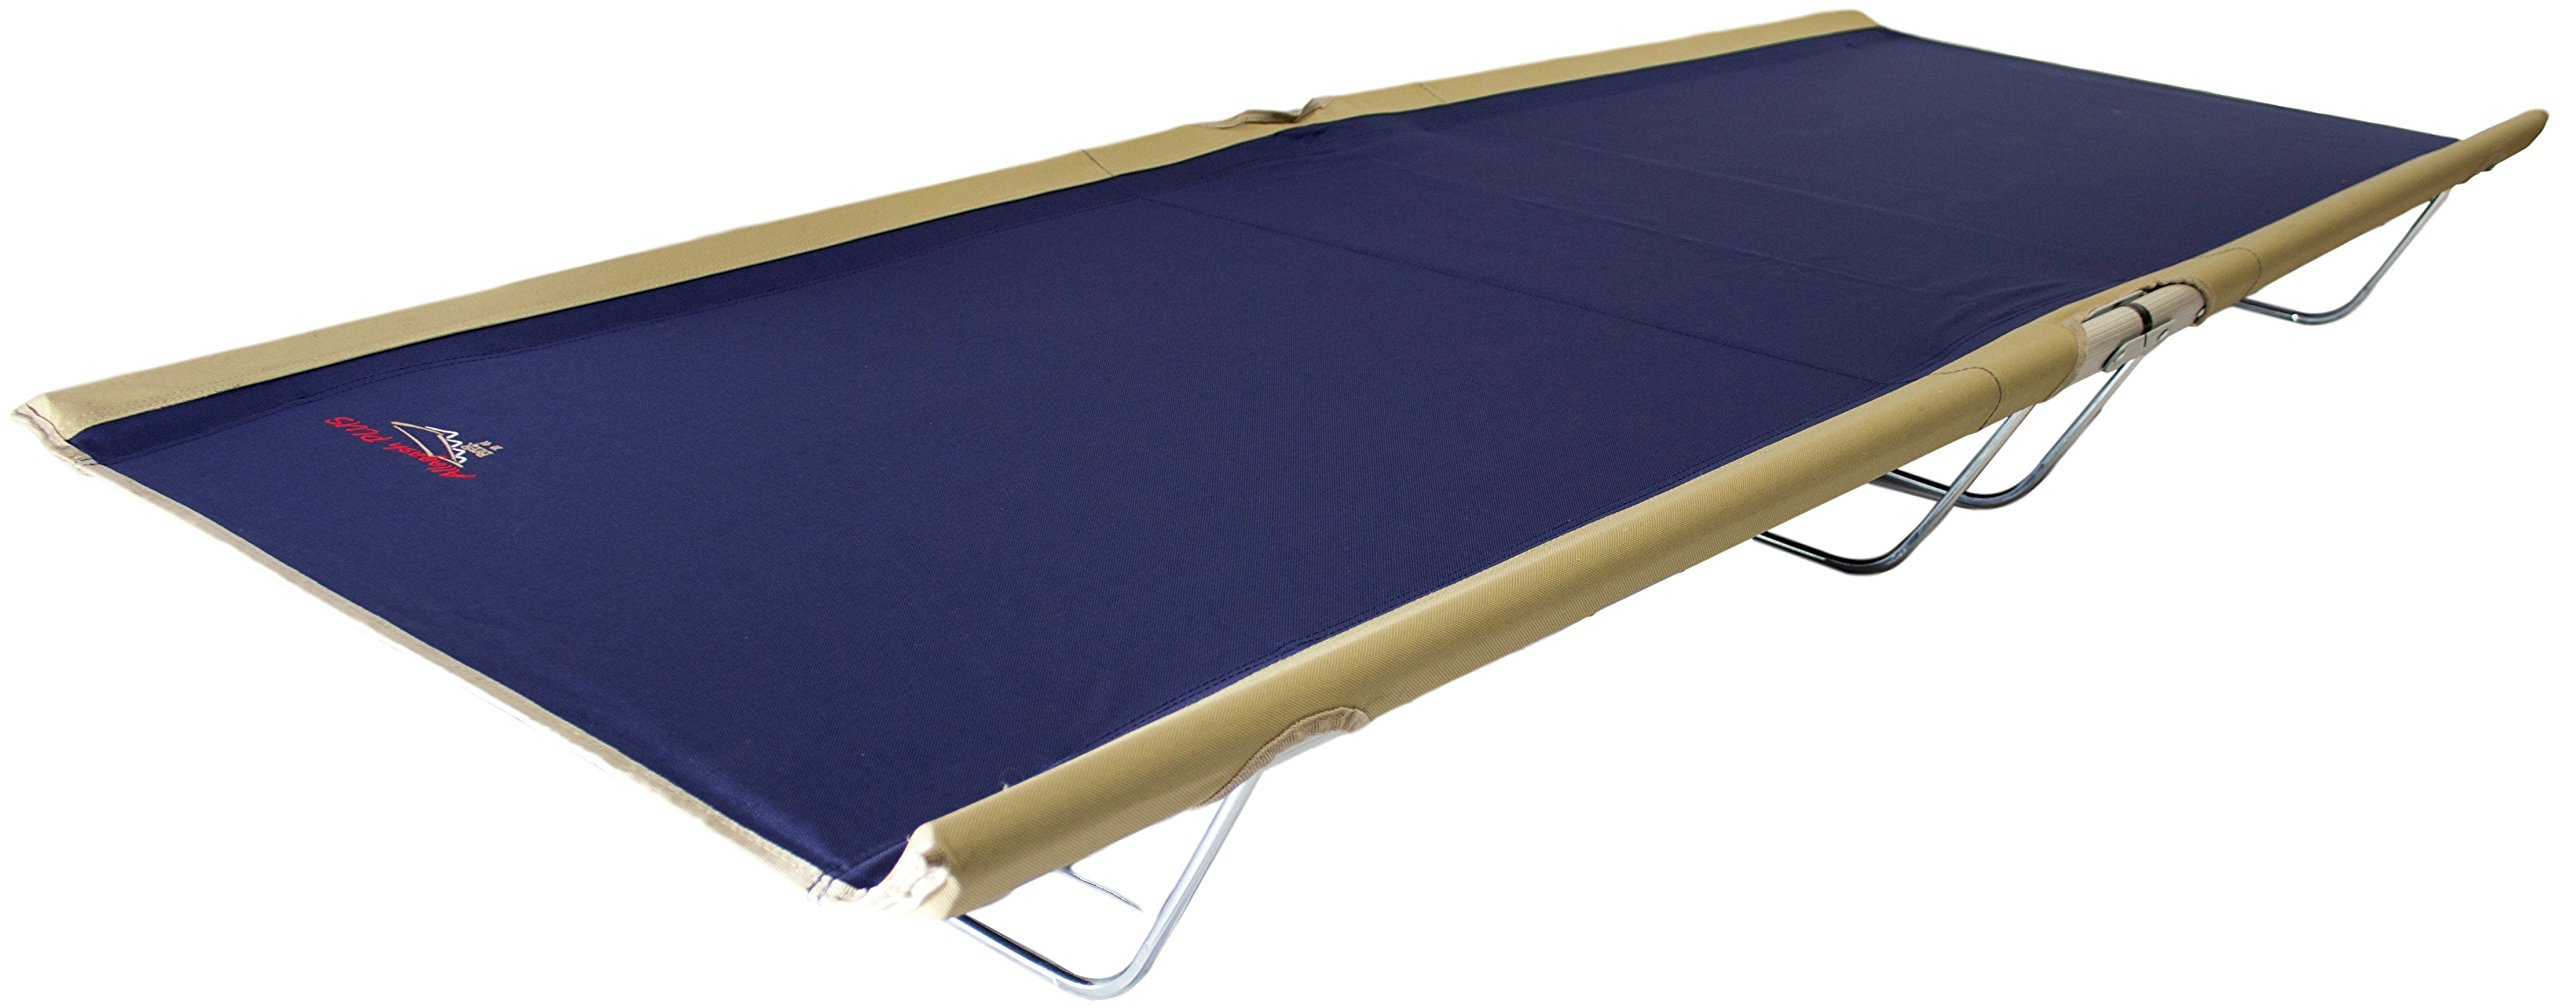 """Byer of Maine Allagash Plus Cot, Lightweight, Extra Wide, Single Size, 76'' L X 30'' W X 8""""H, Holds up to 250lbs"""